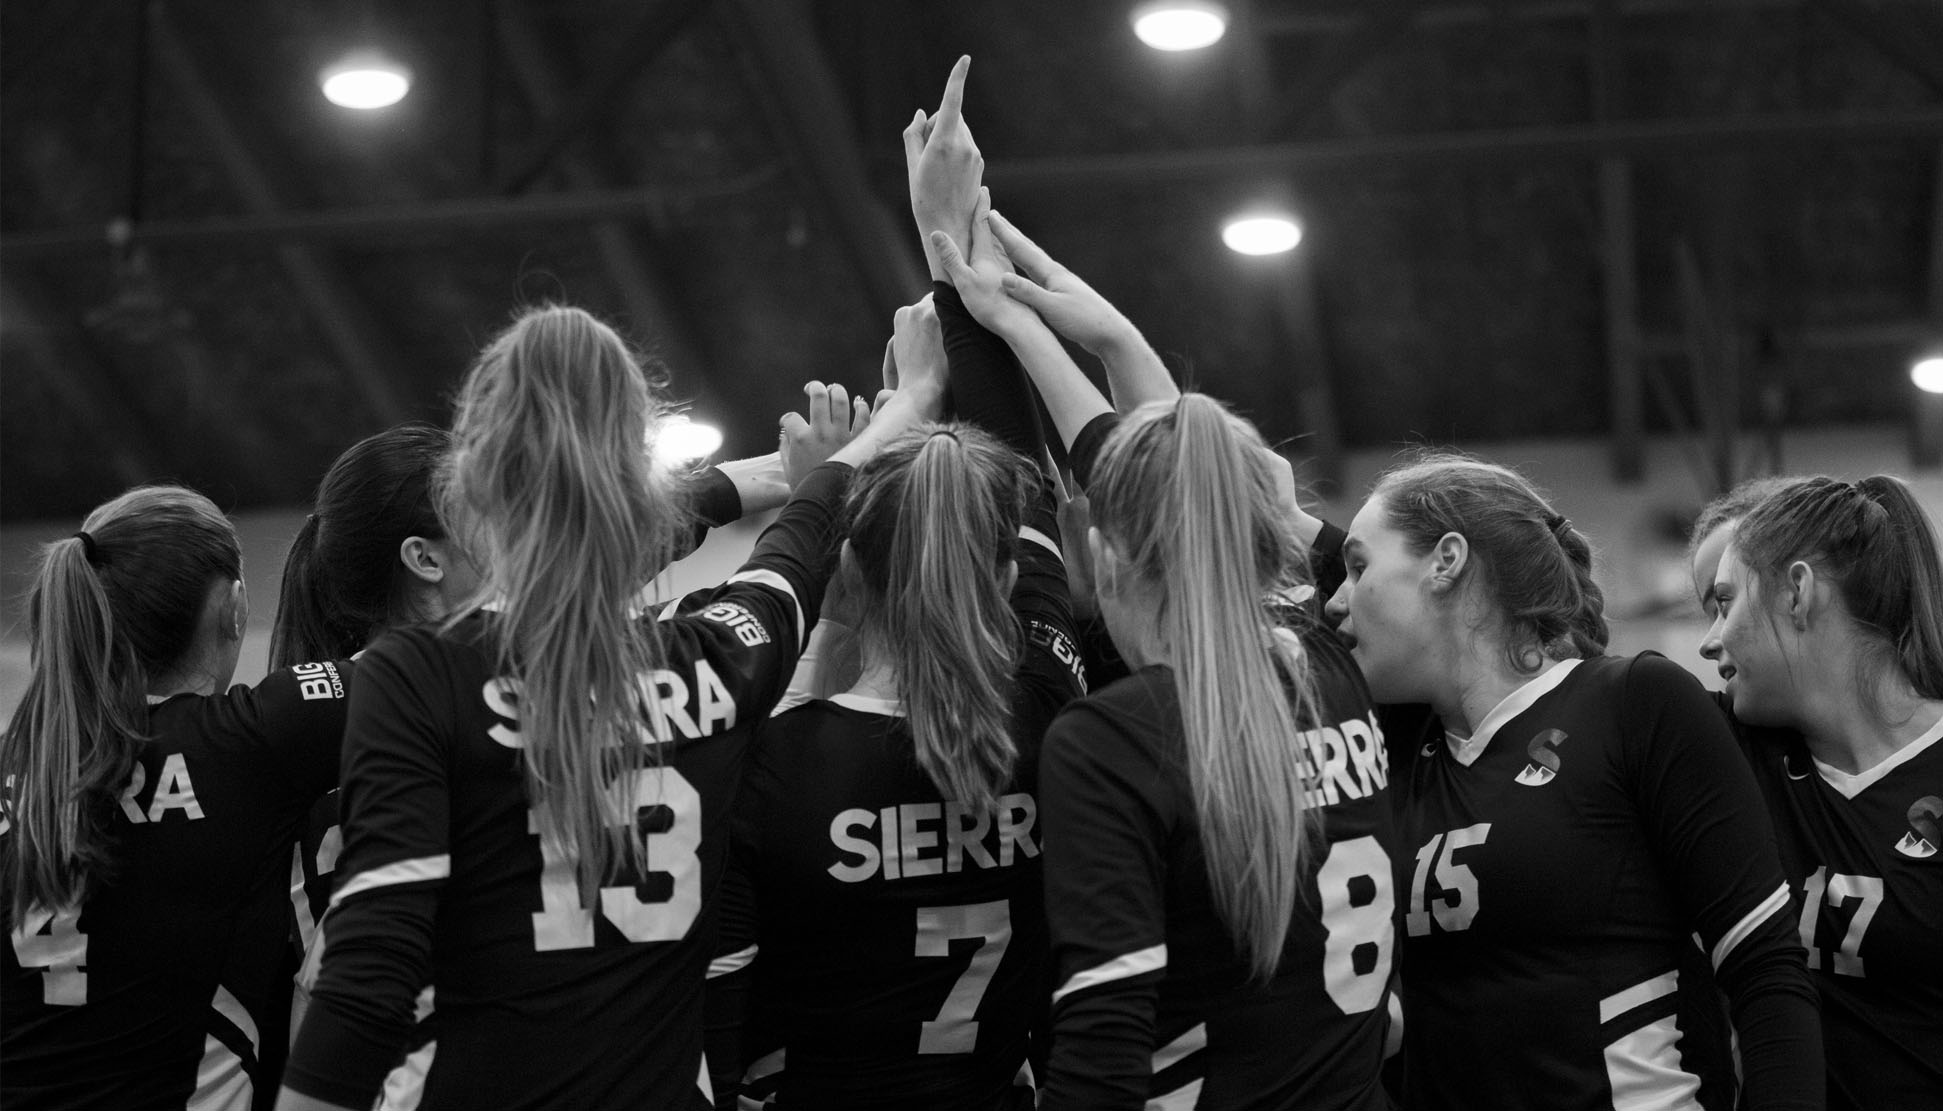 2019 Sierra College Volleyball after a timeout at the 2019 NorCal Finals at Cabrillo College on November 30, 2019.